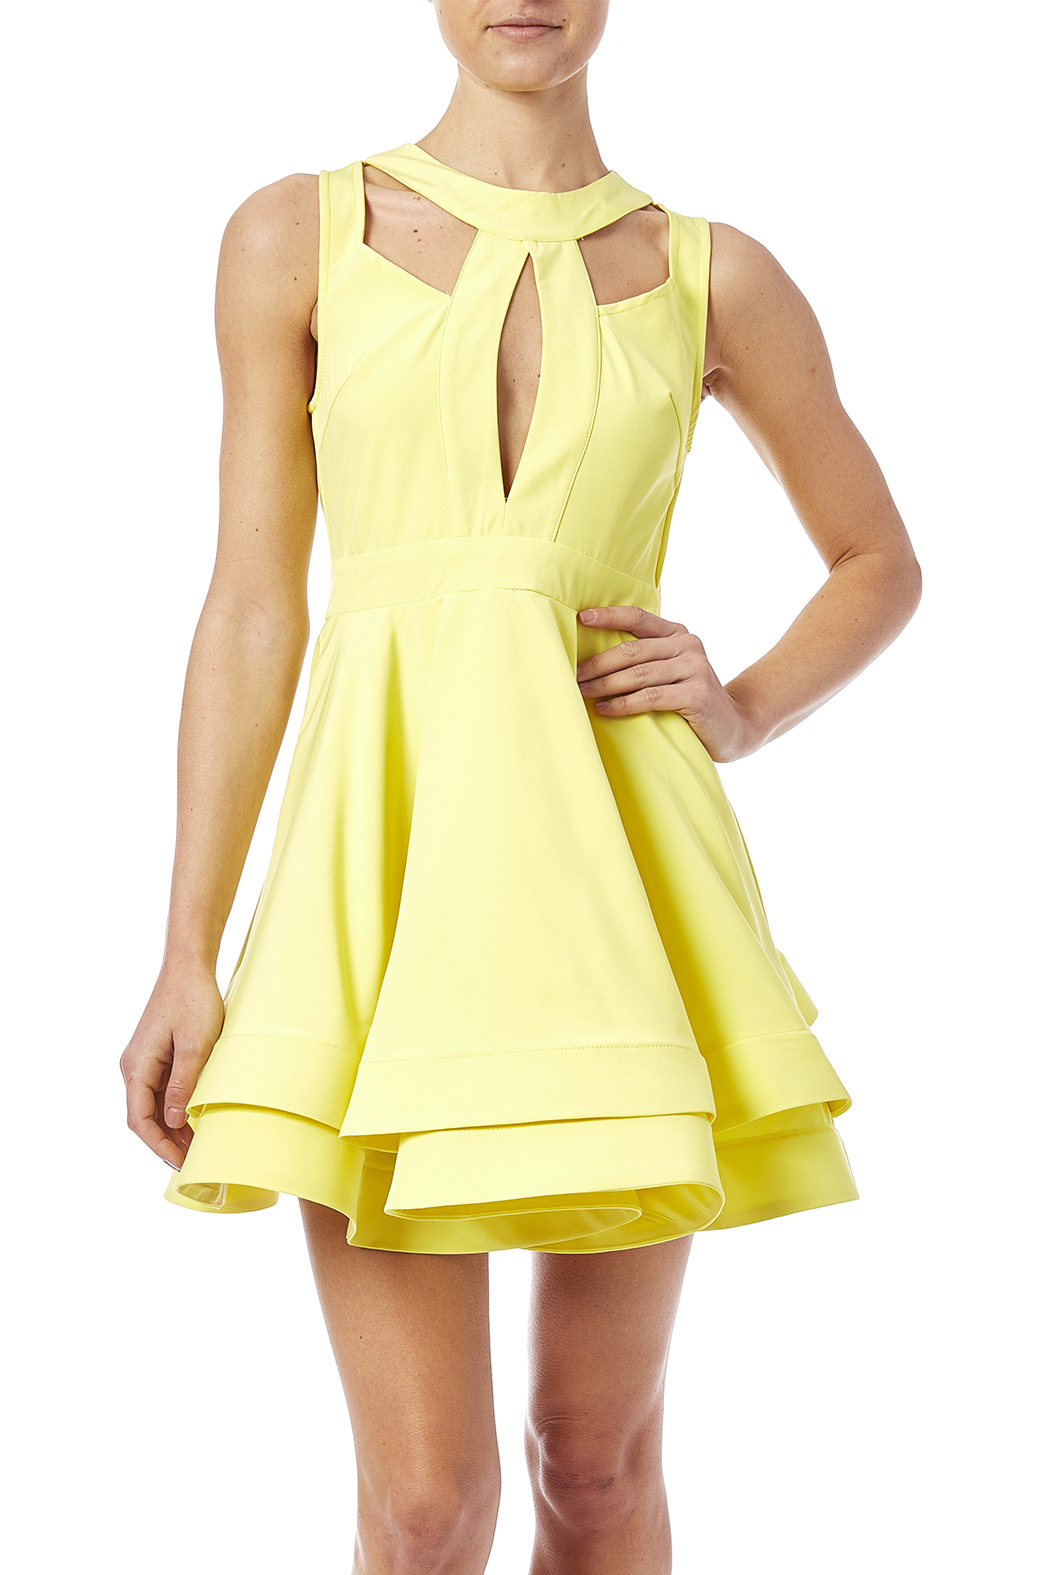 luxxel Cutout Flare Dress - Main Image